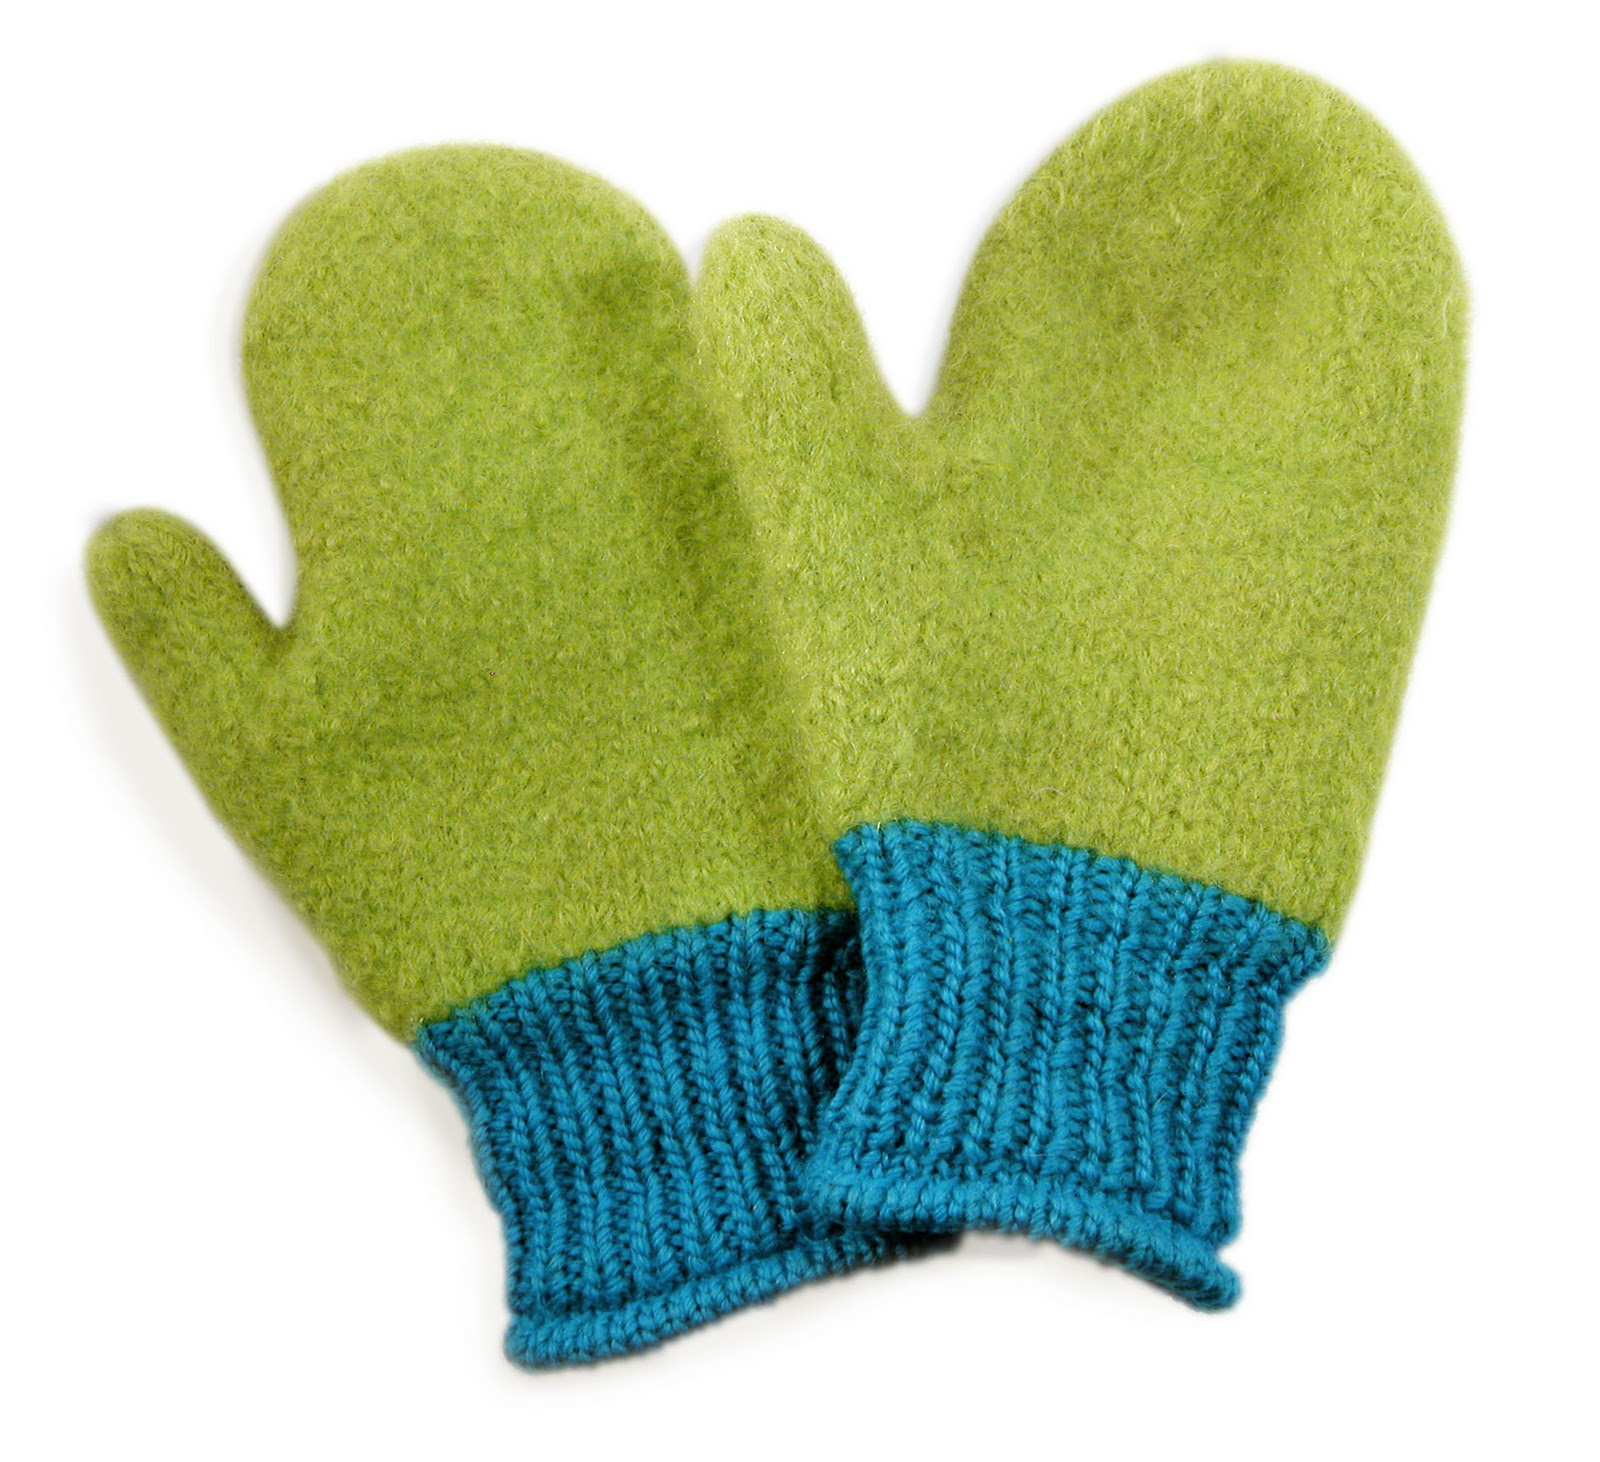 Knitting Pattern Gloves Child : TECHknitting: A felting primer for hand knits (wet felting)